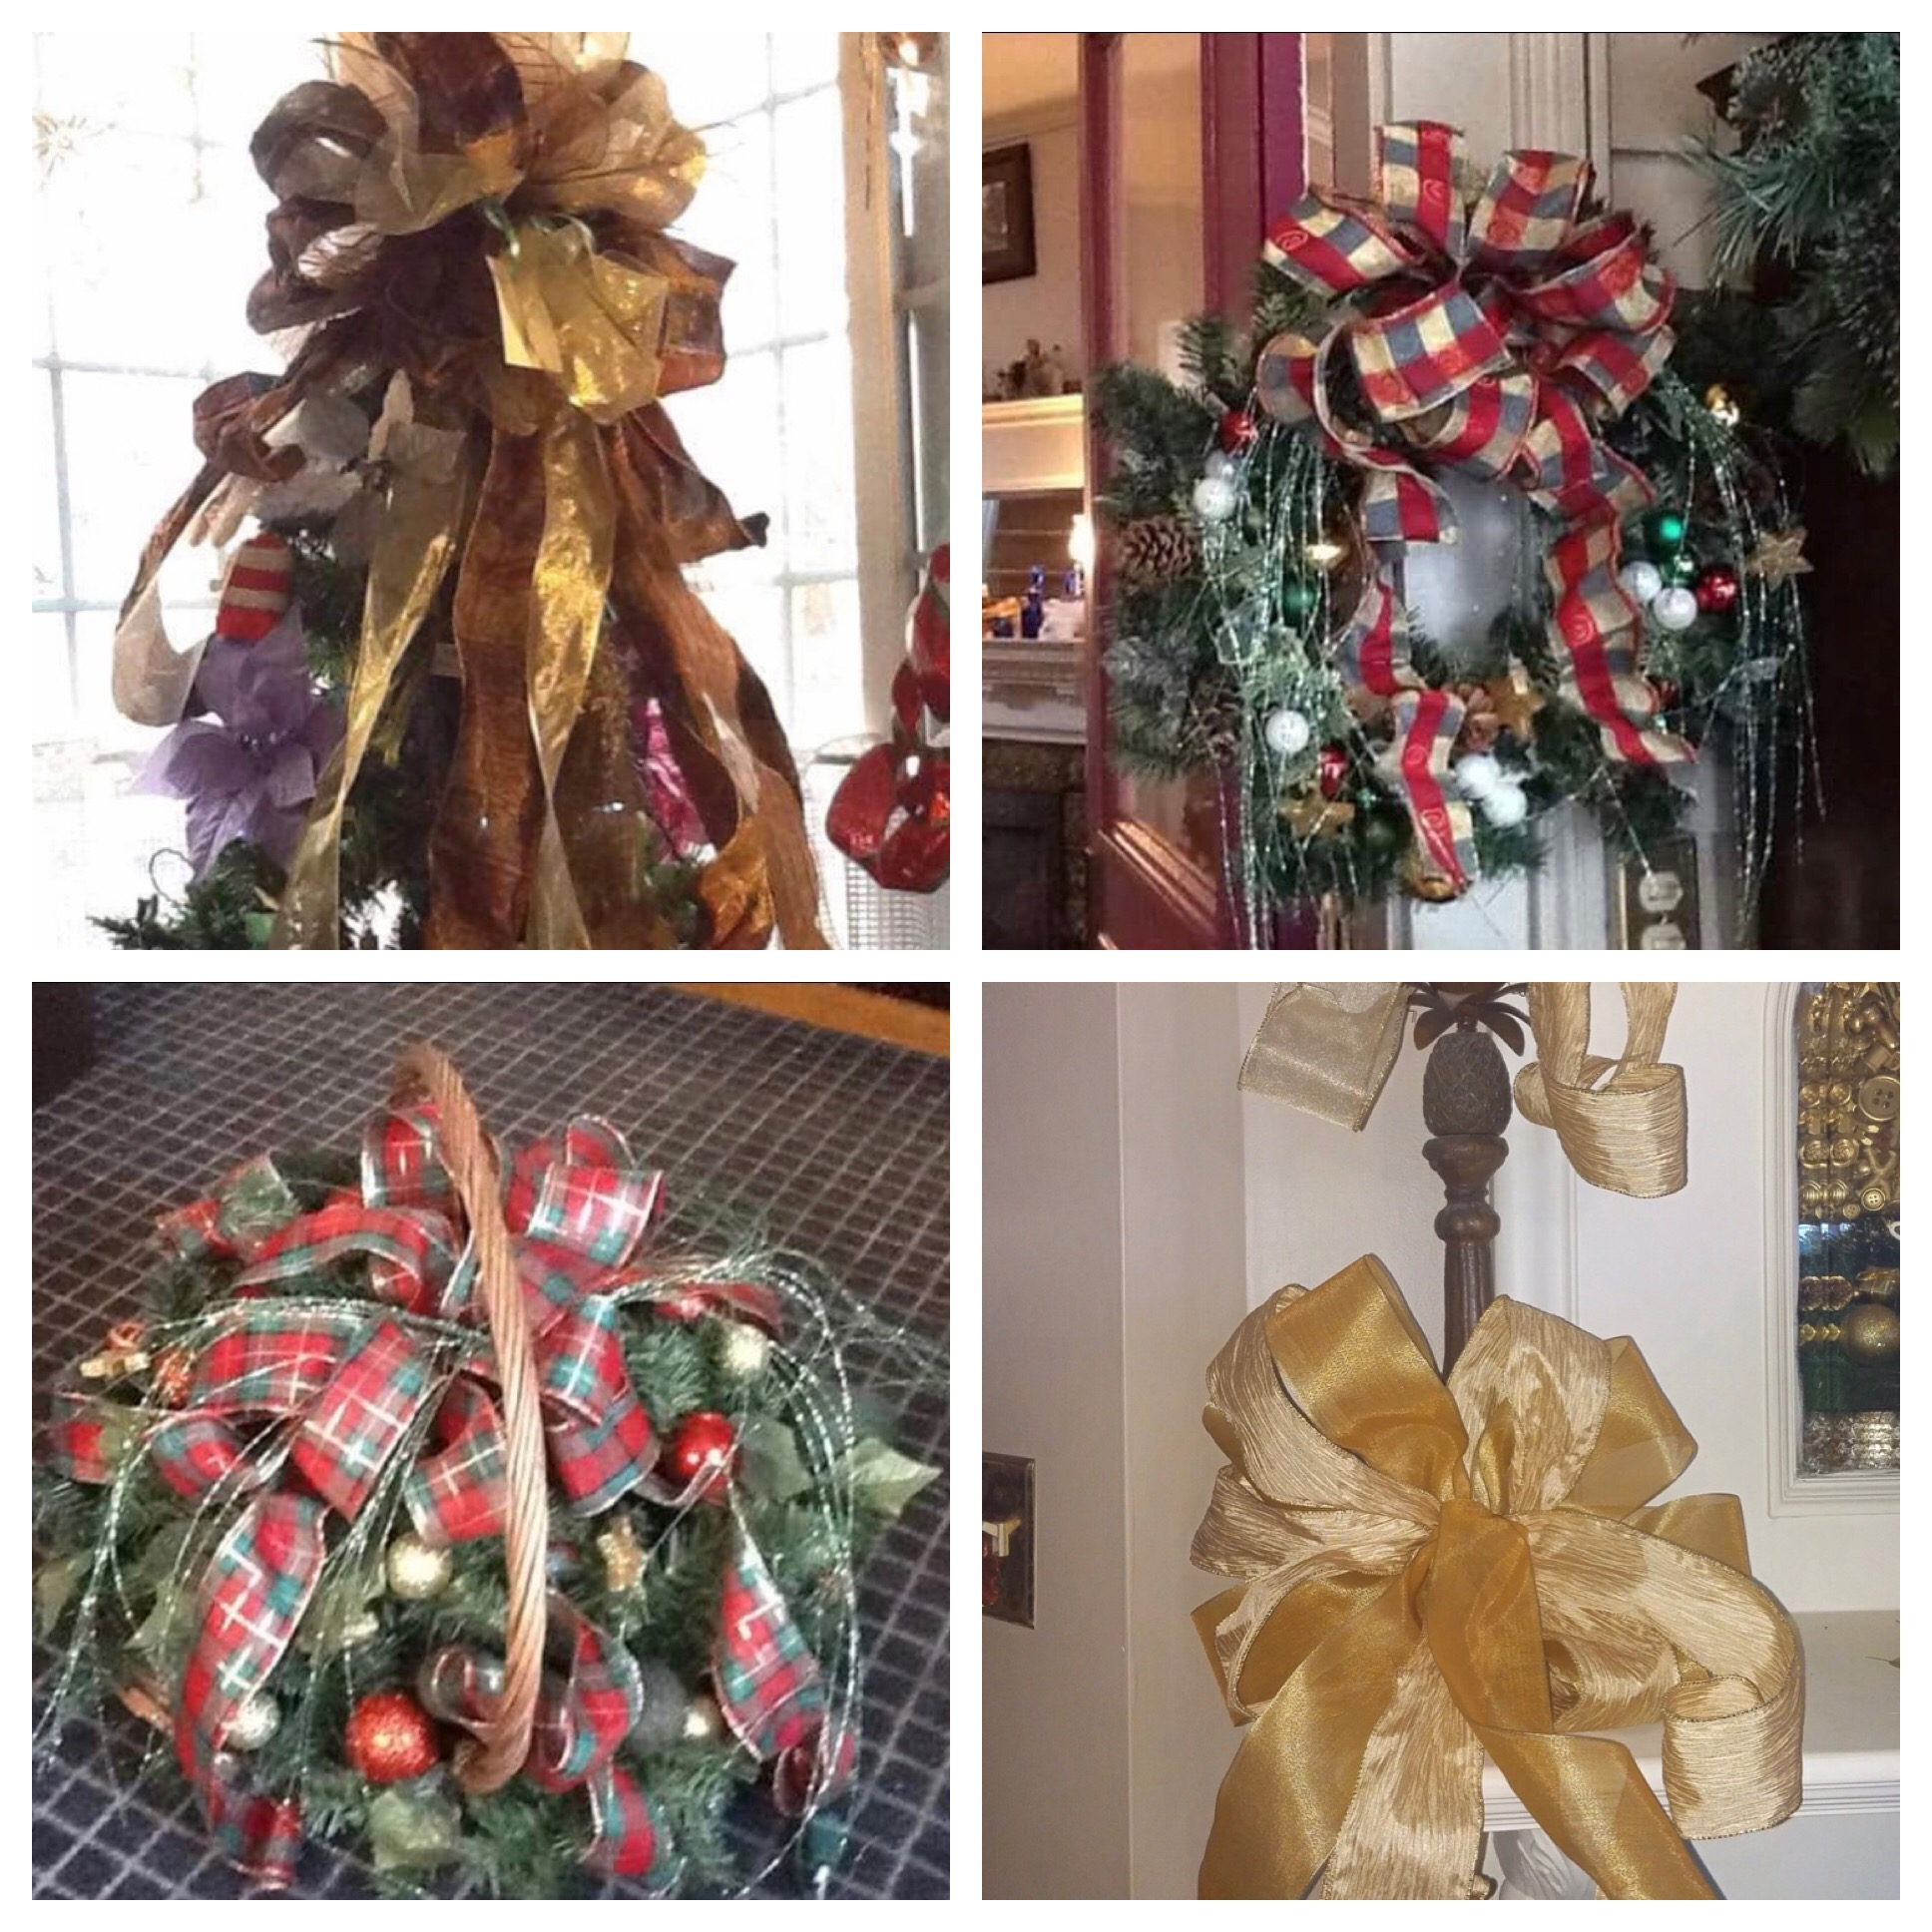 Beautiful Bows for All Occasions - Instructor: Marie BishopDate: Sunday, Sept. 7, 9:00-12:00 (Half Day Class)Cost: $35Maximum spots: 8No Experience Needed.